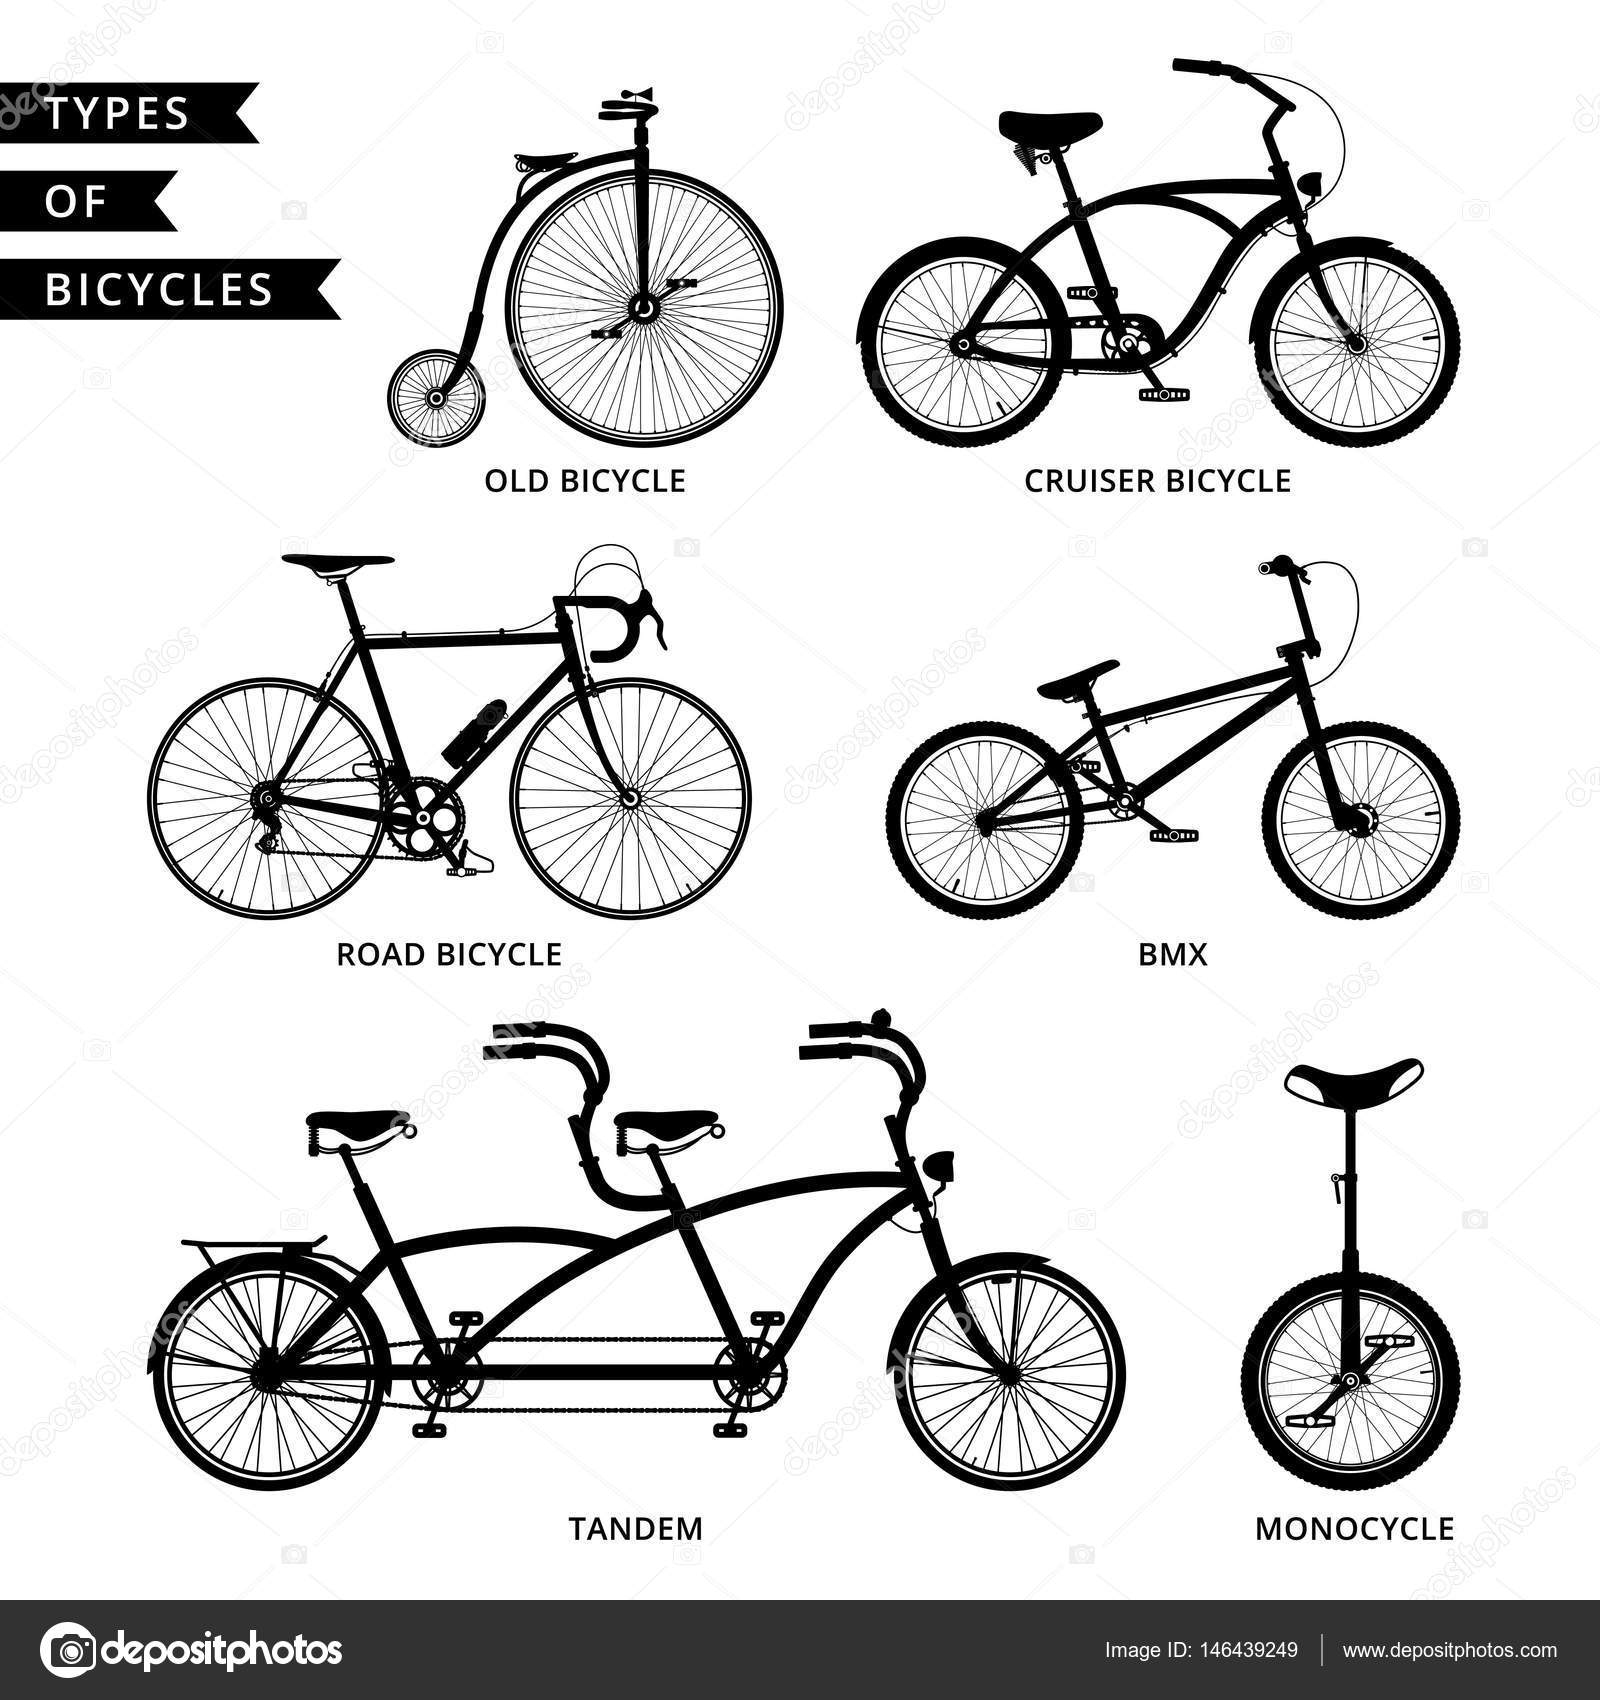 Types Of Bicycles >> Types Of Bicycles Silhouette Stock Vector C Ko T 3208 Gmail Com